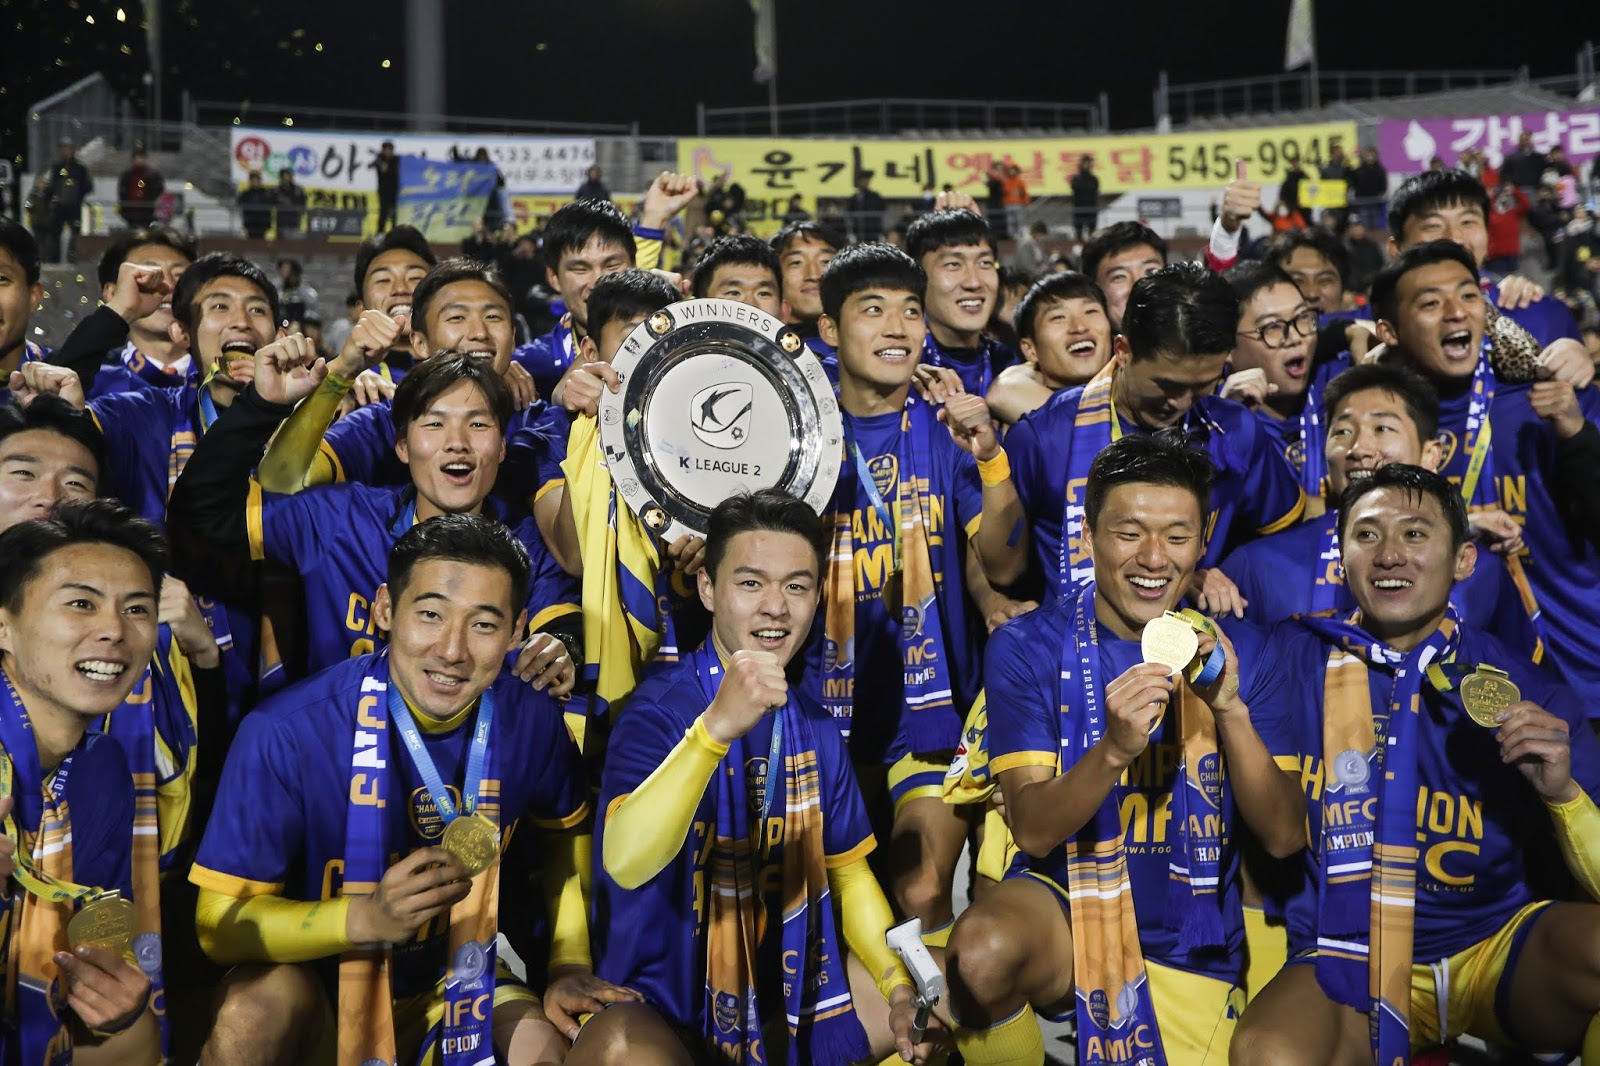 2019 Season Preview: Asan Mugunghwa K League 2